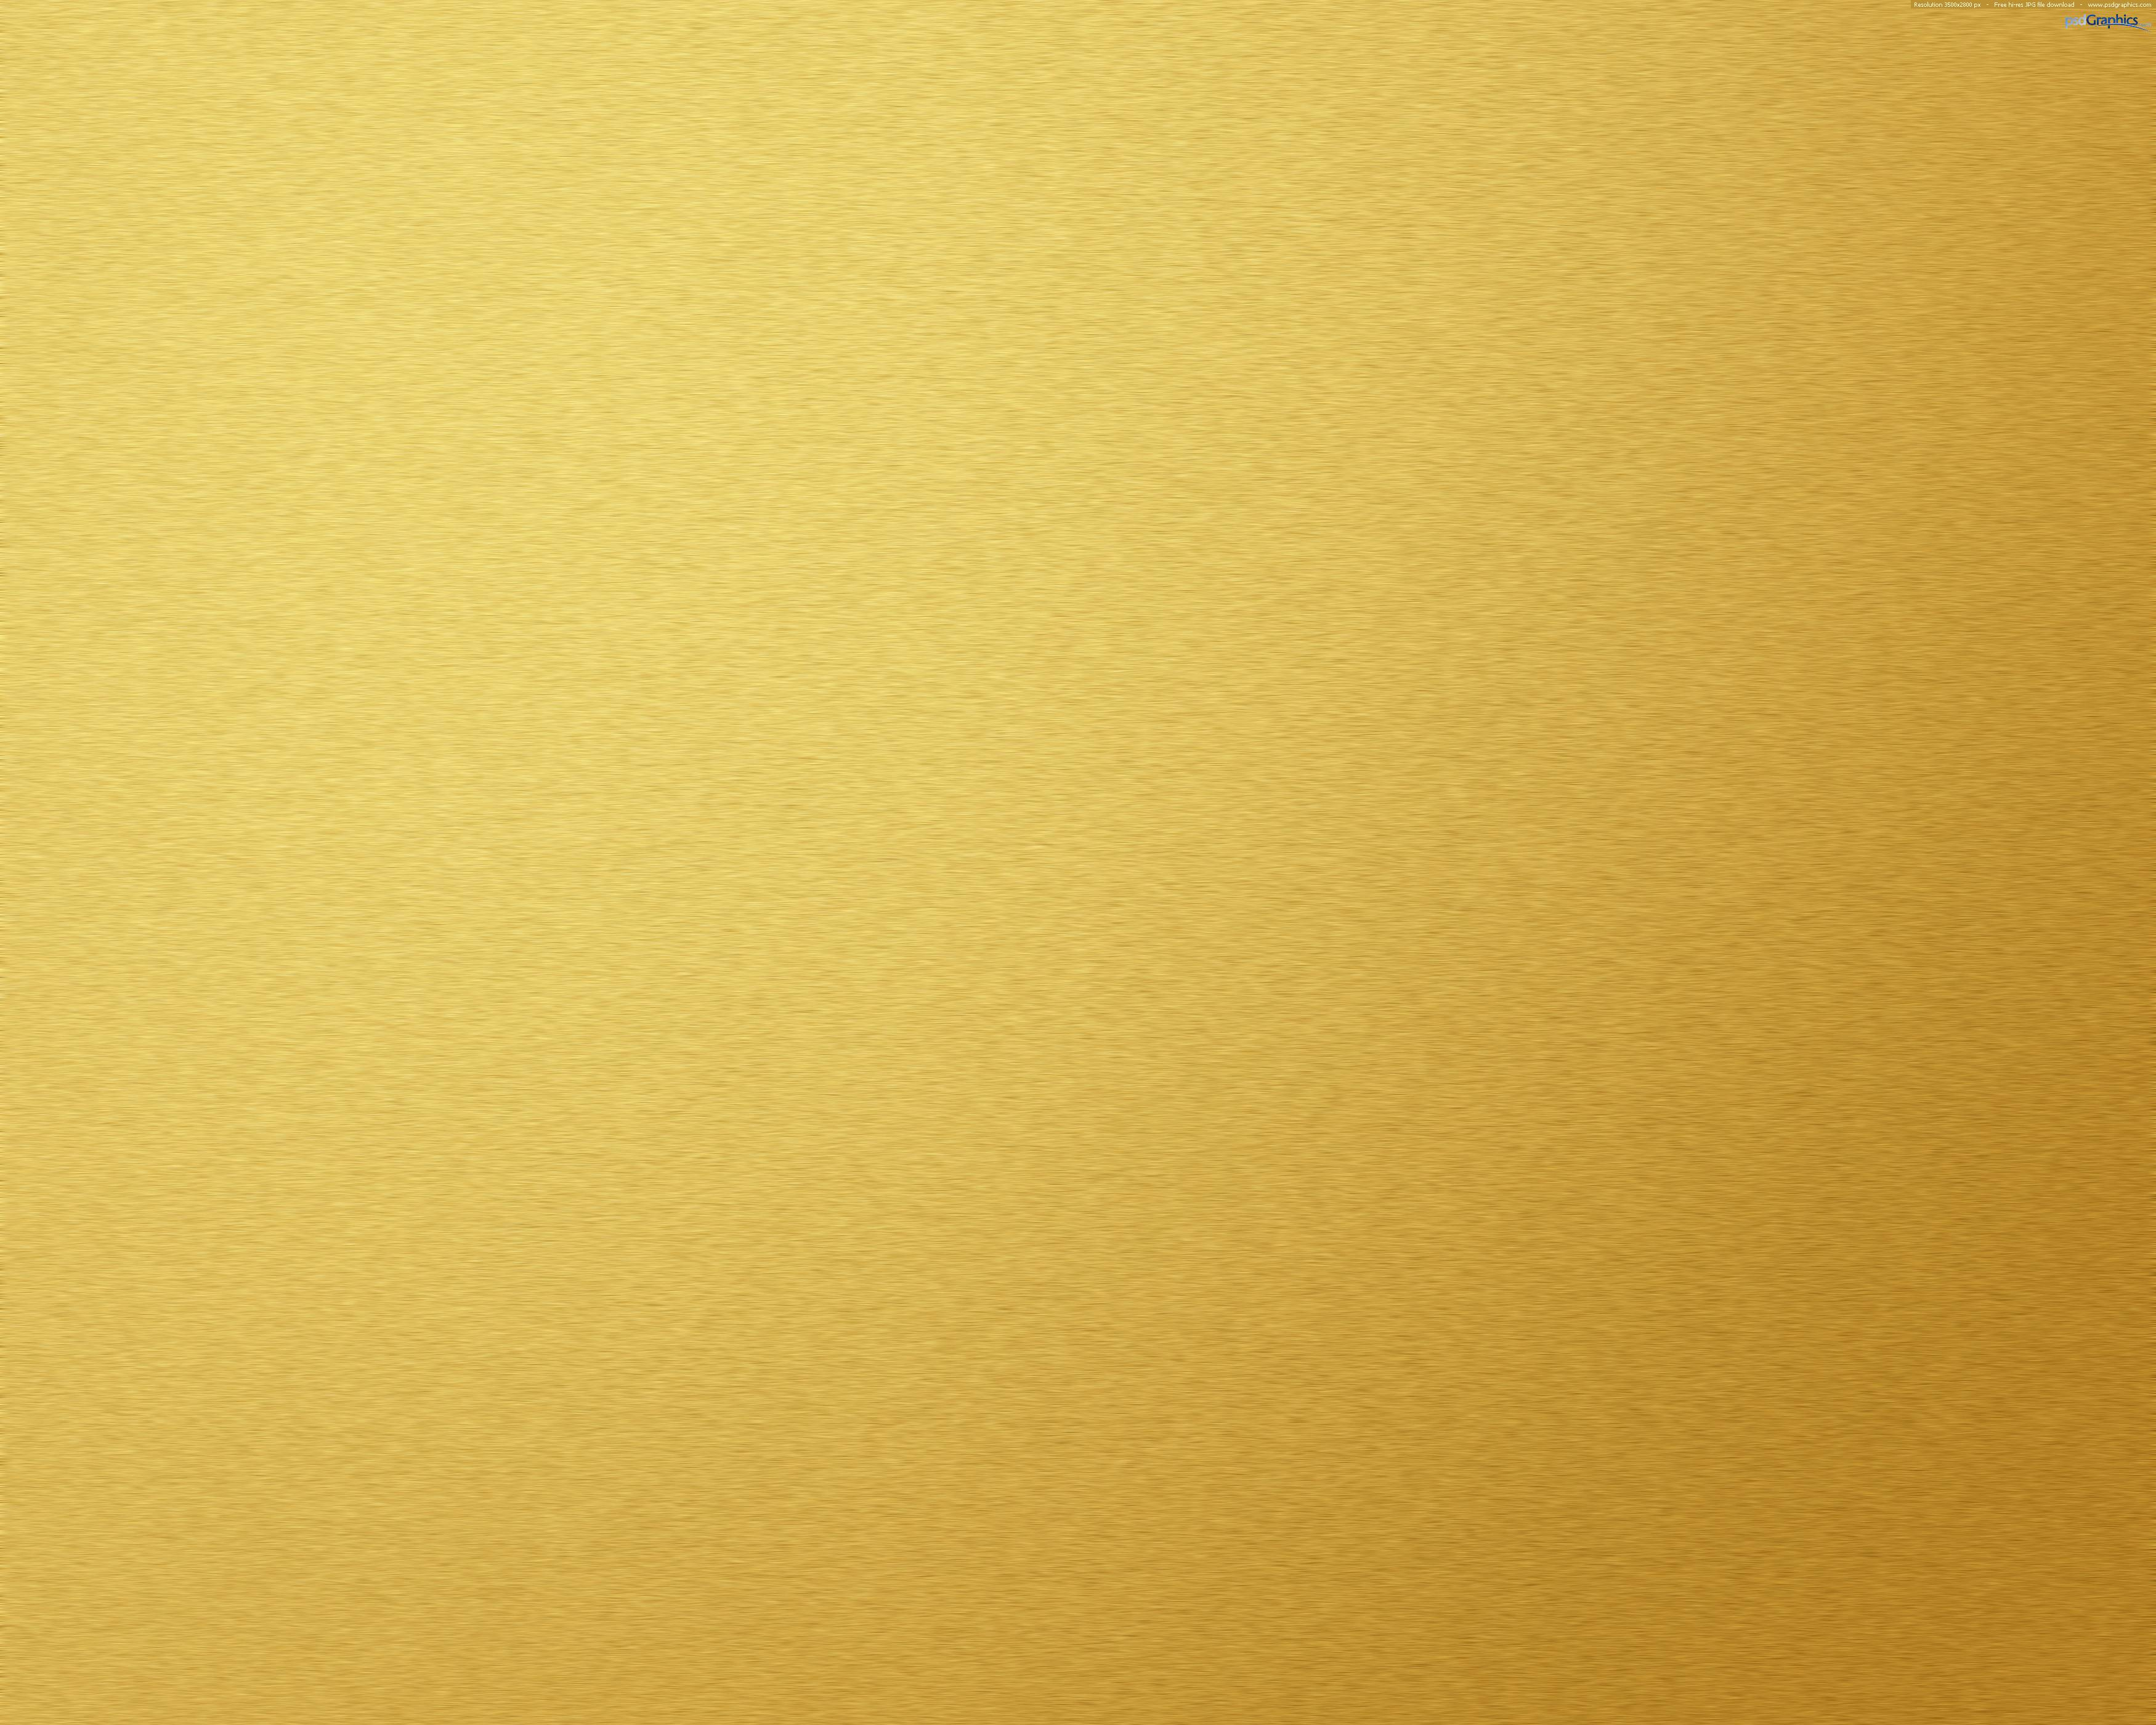 Gold Color Backgrounds 3500x2800